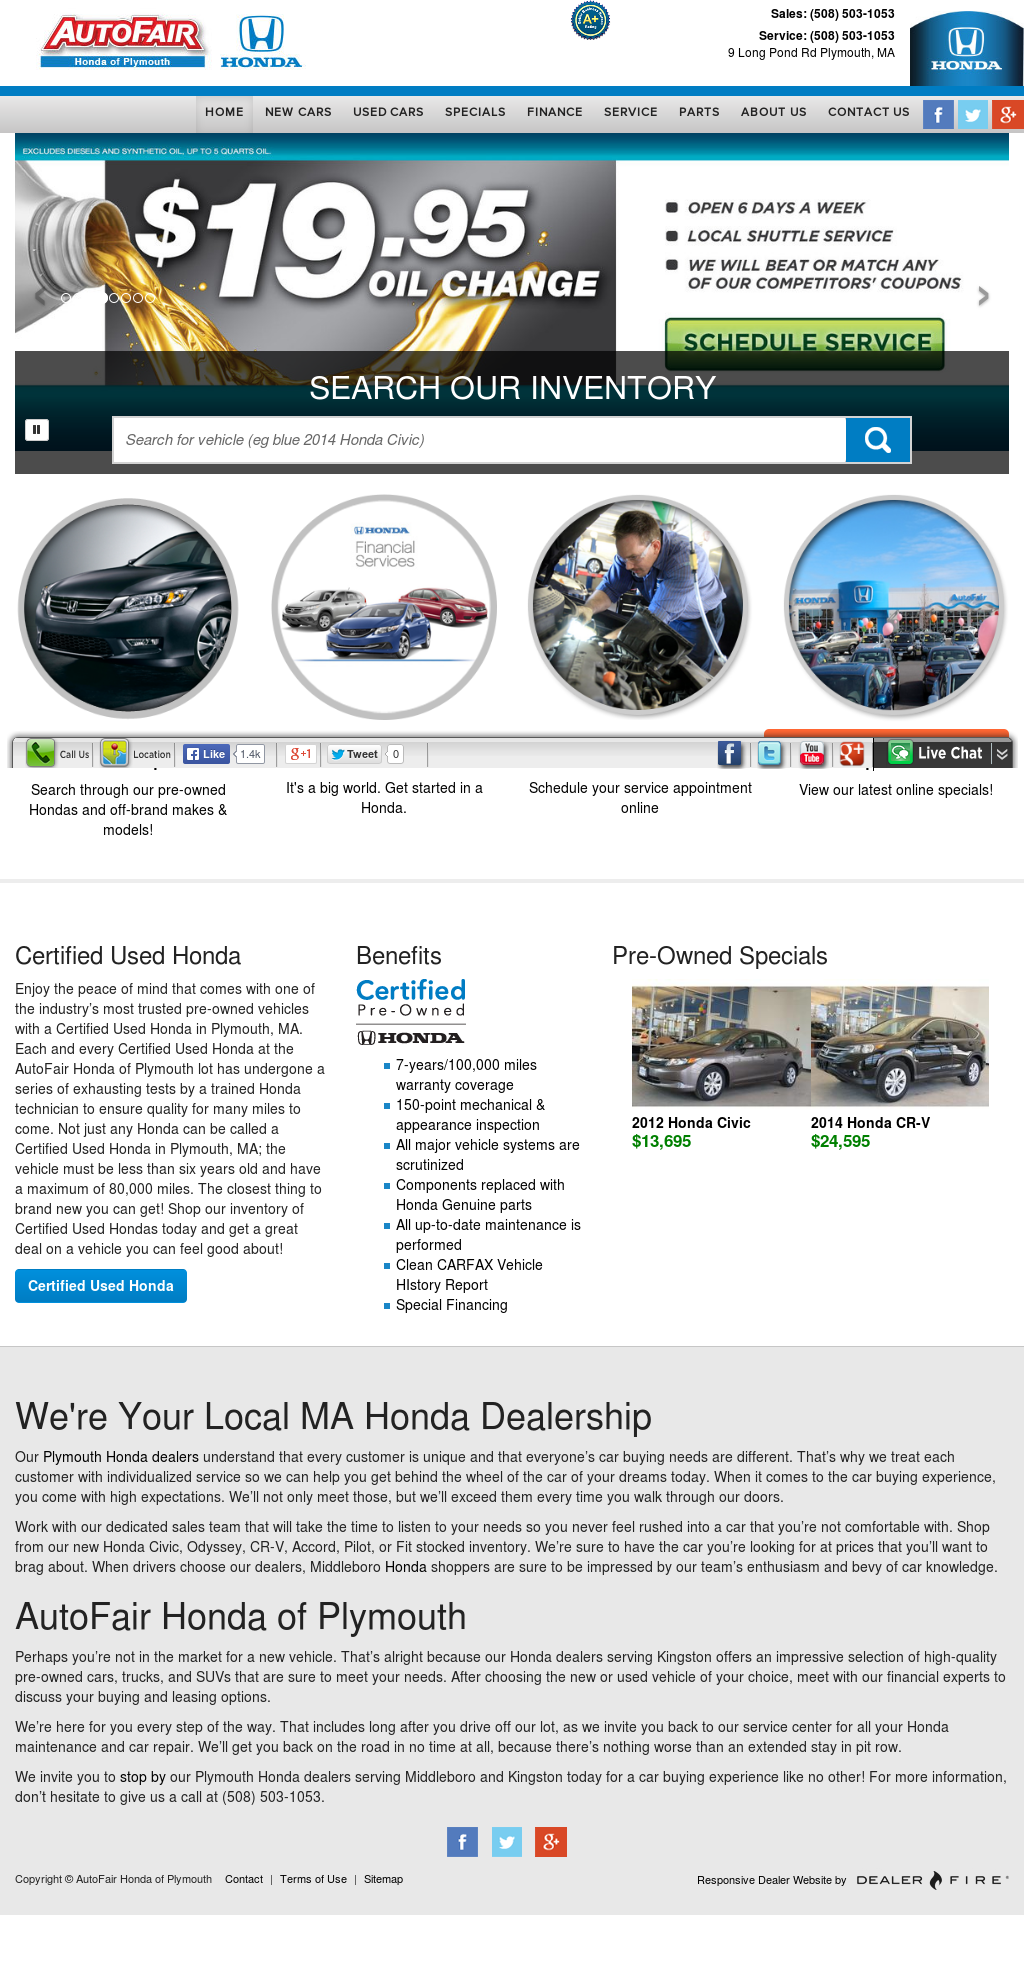 Marvelous AutoFair Honda Of Plymouth Competitors, Revenue And Employees   Owler  Company Profile